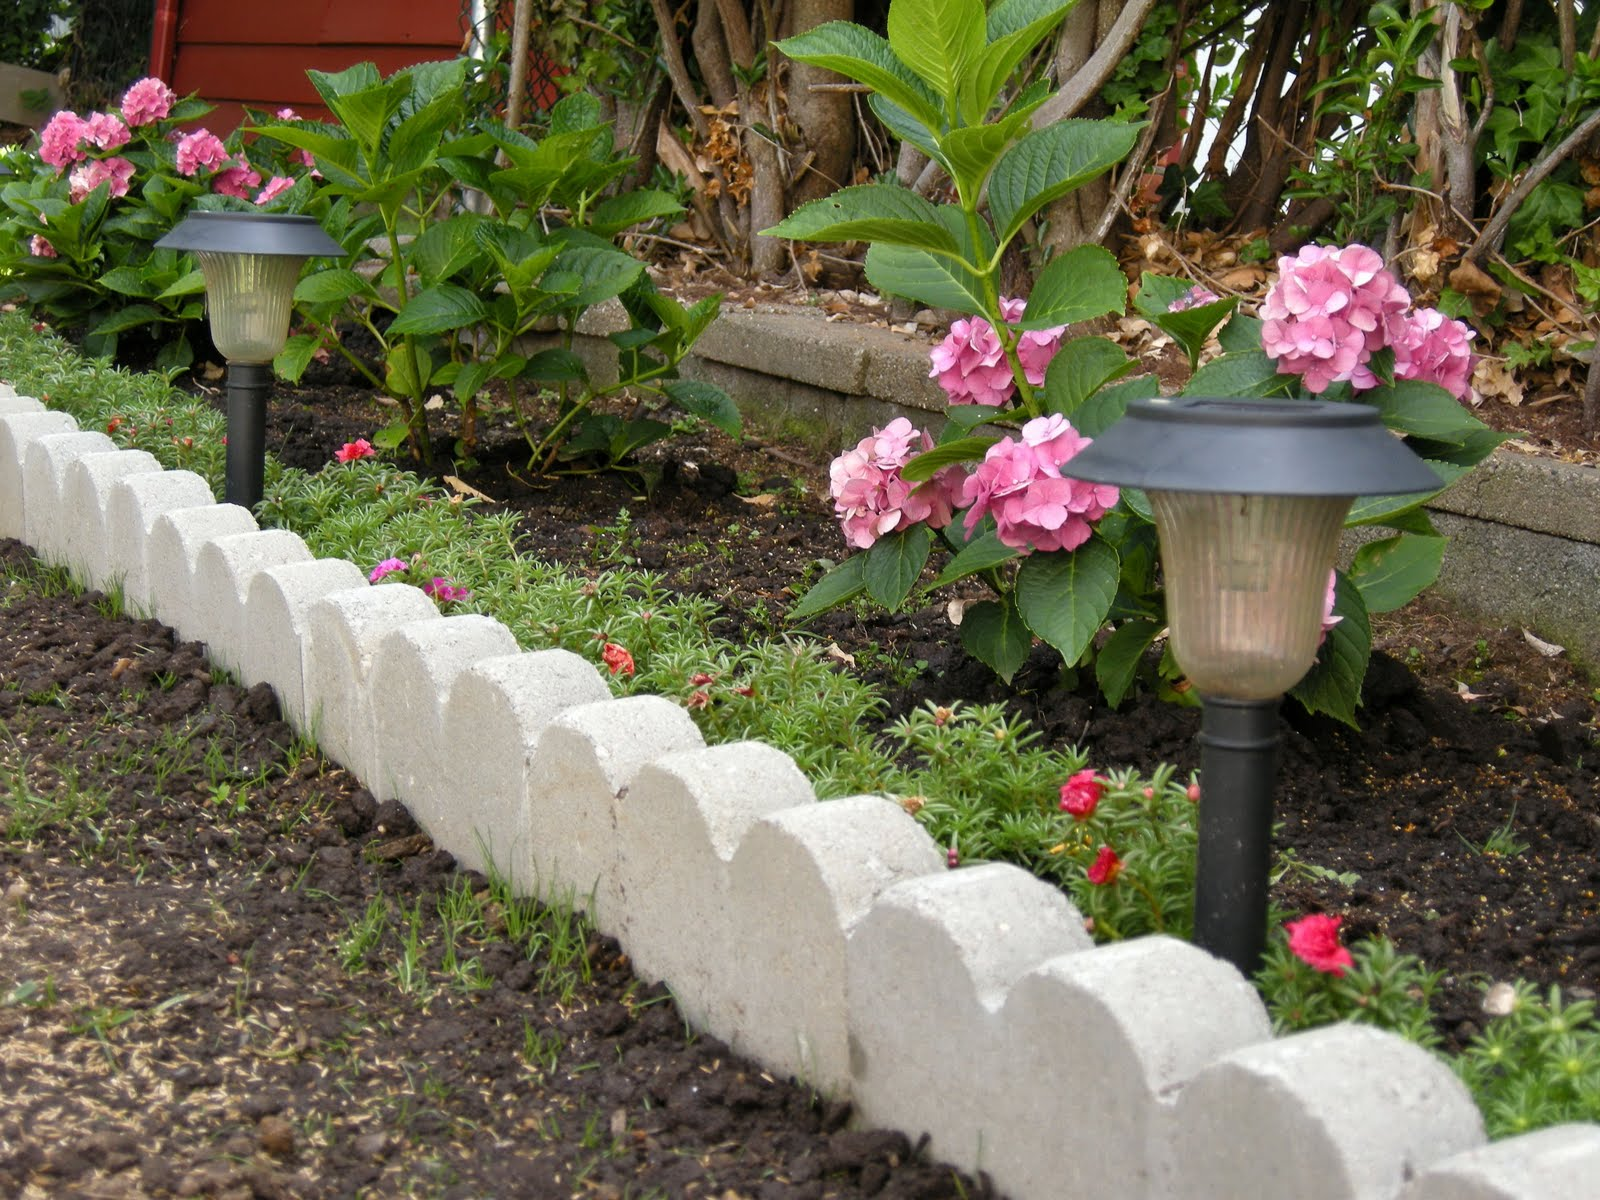 Link to Lowe's Home Improvement Home Page. Welcome to Lowe's Beautiful Garden Borders. Add border beauty to your garden with these smart (and SIMPLE) edging ideas. Because it can be turned at the joints, this edging can easily conform to any shape of plant or flower bed.